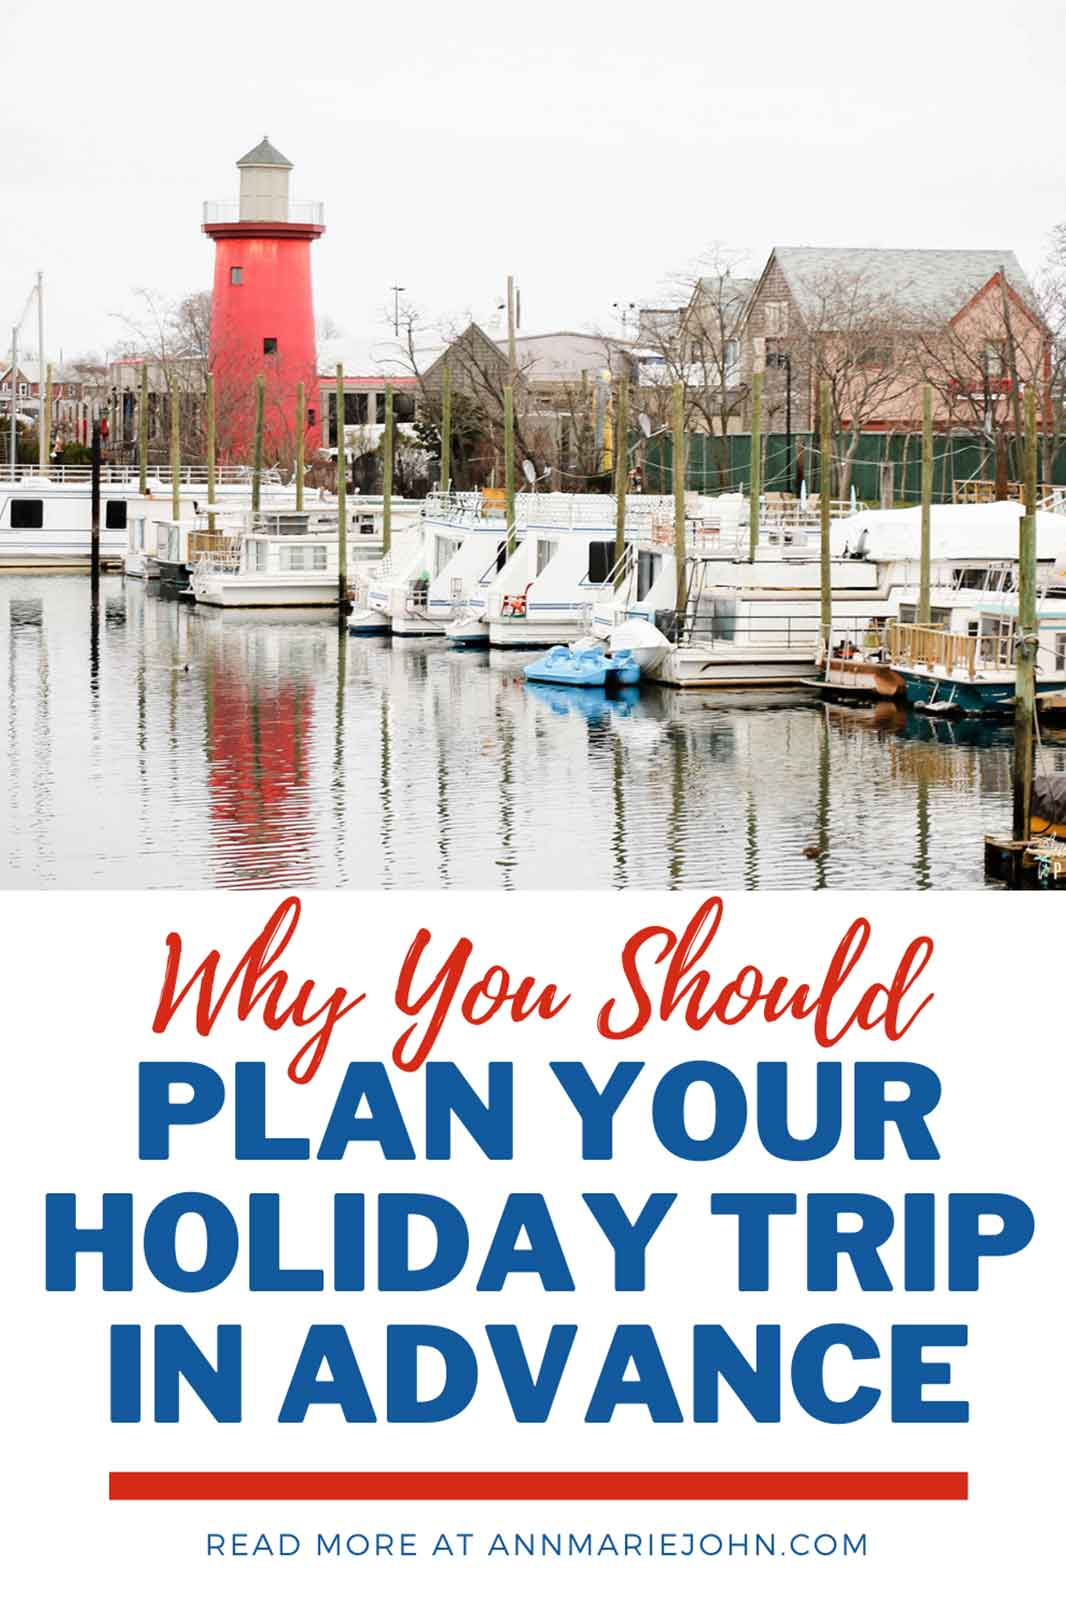 Reasons Why Planning Your Holiday Trip in Advance is a Smart Idea